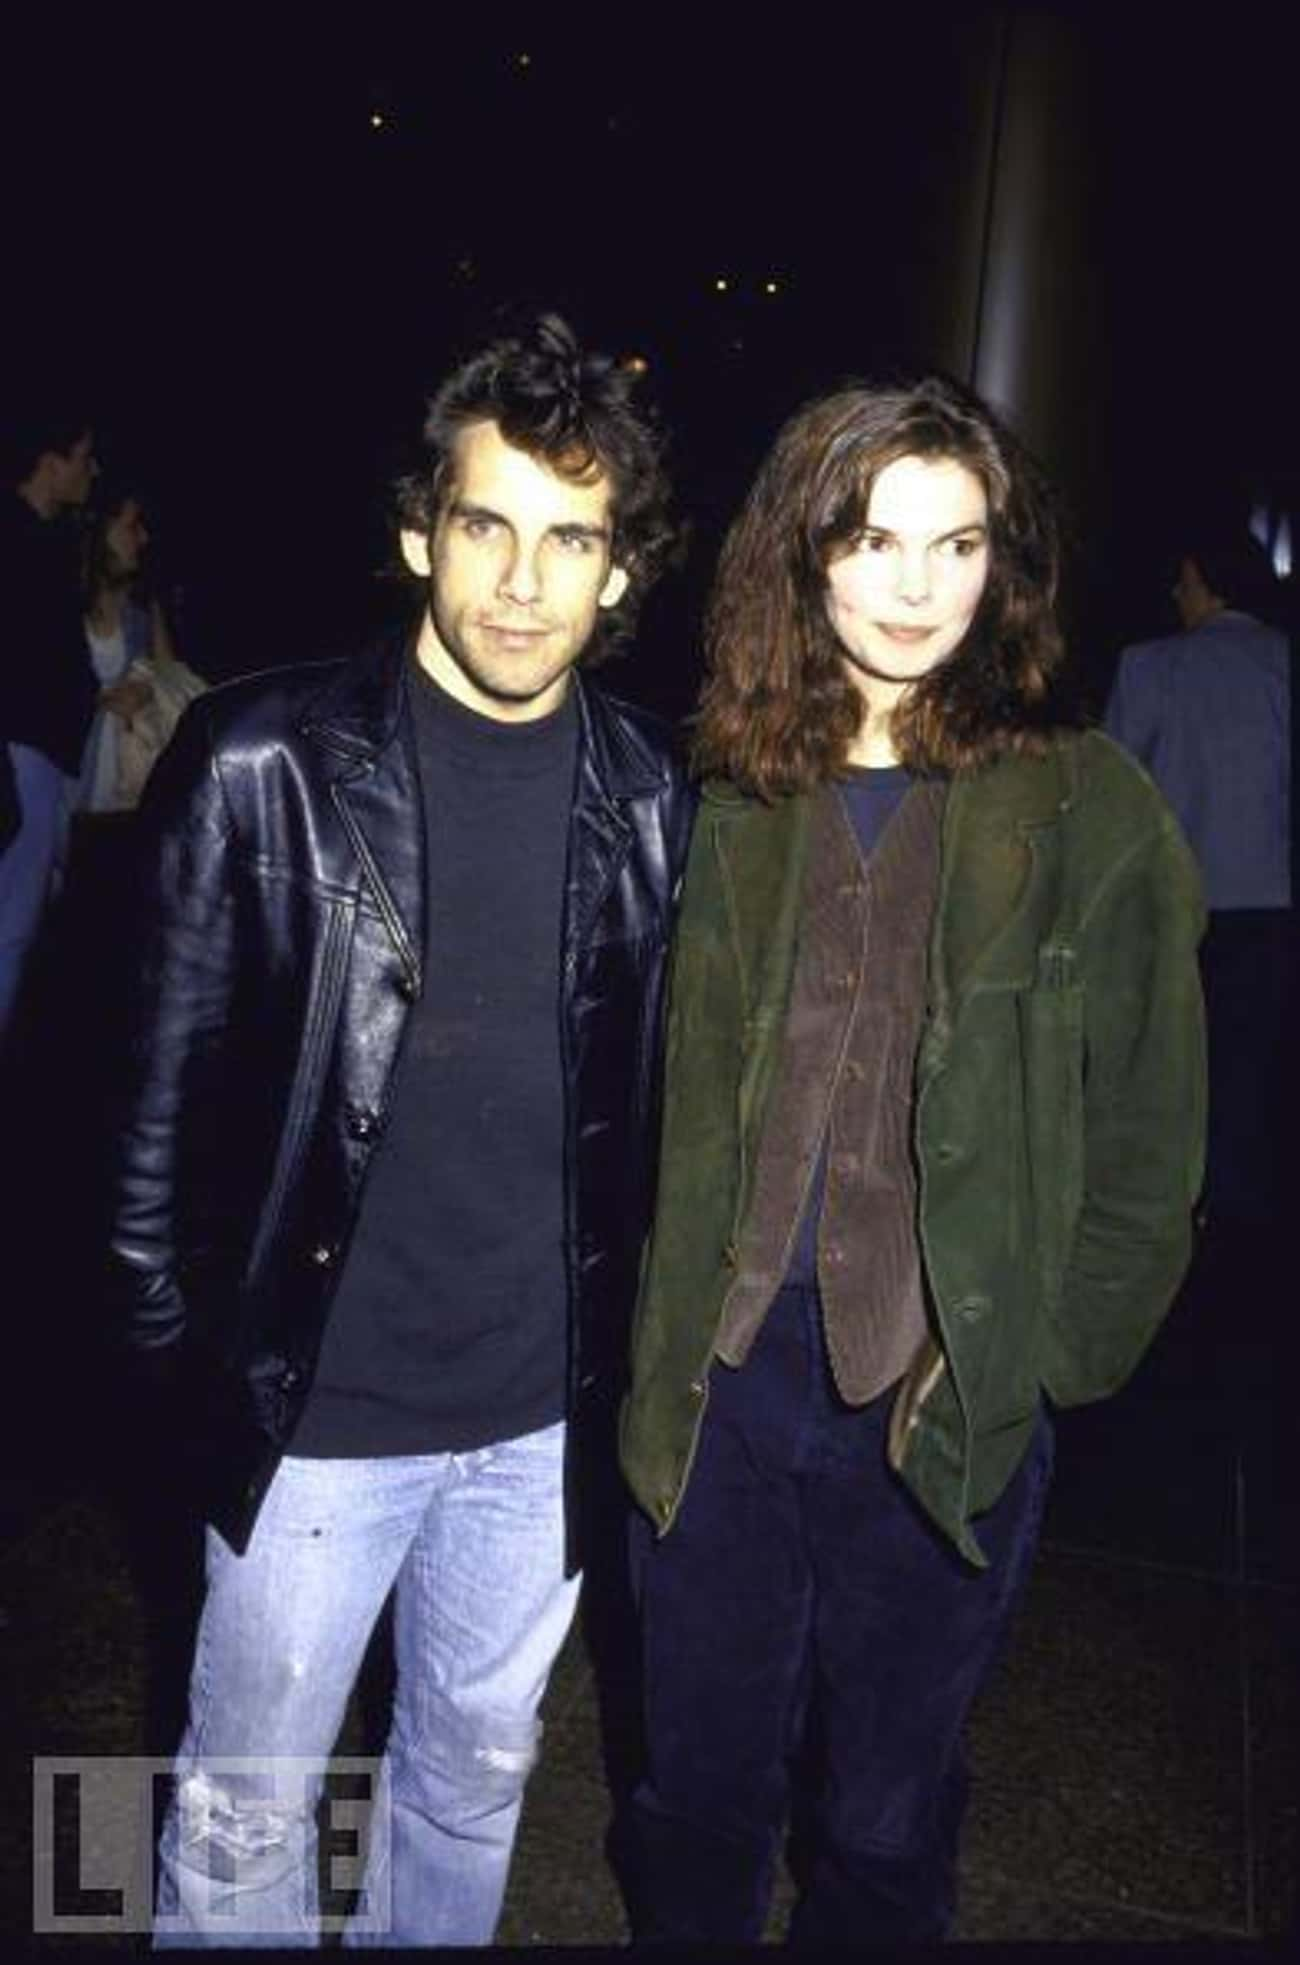 Jeanne Tripplehorn And Ben Sti is listed (or ranked) 4 on the list Famous People You Didn't Know Were Married To Each Other